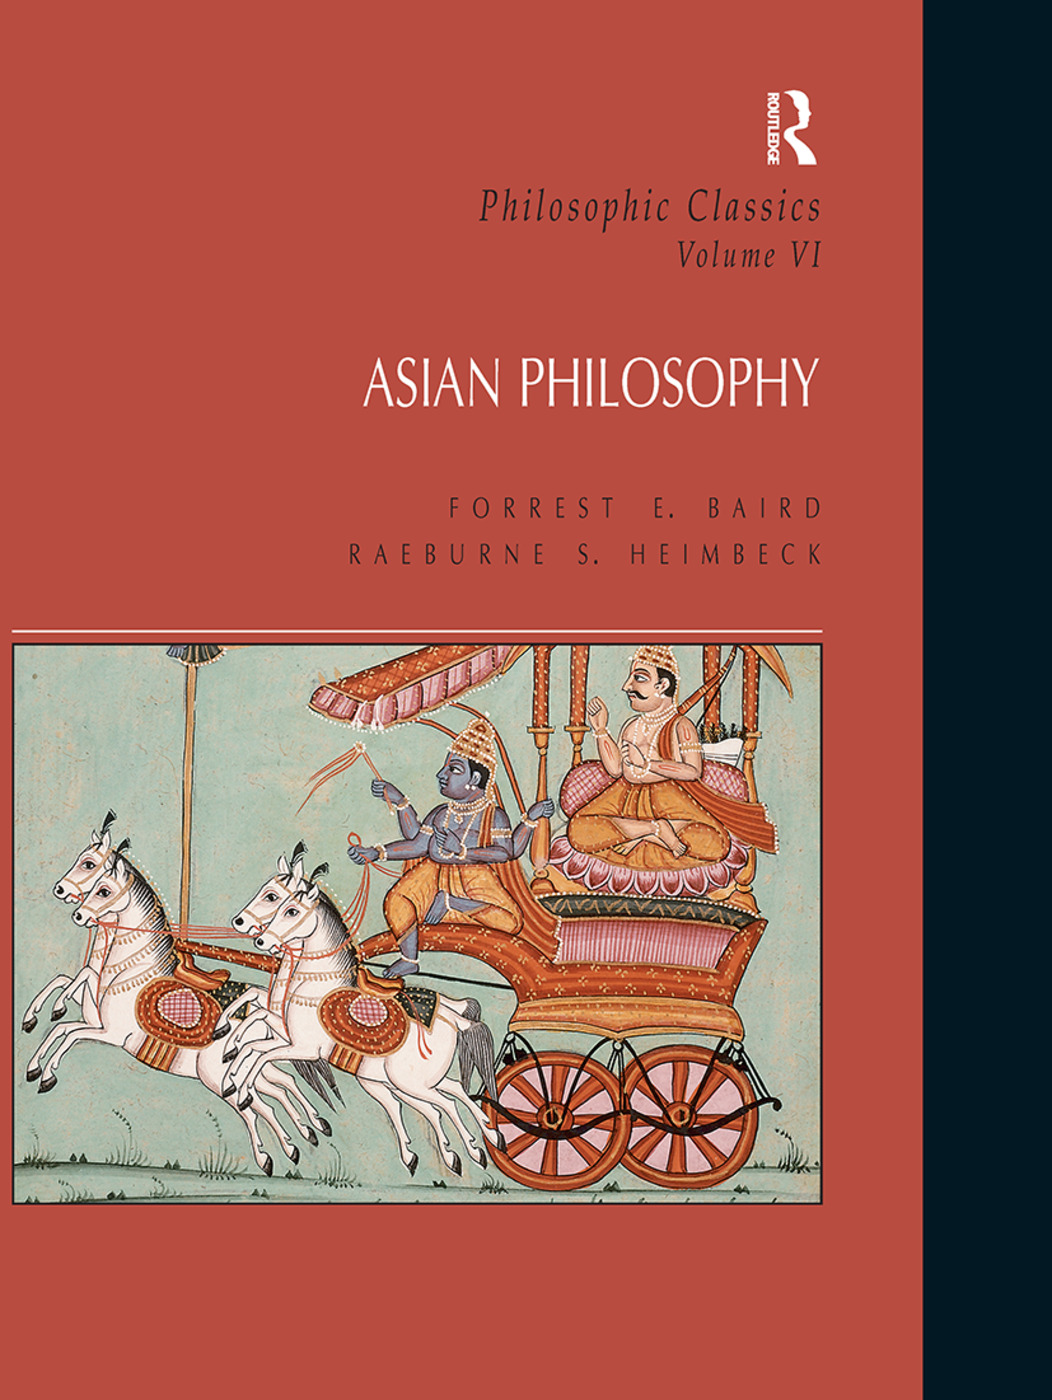 Philosophic Classics: Asian Philosophy, Volume VI